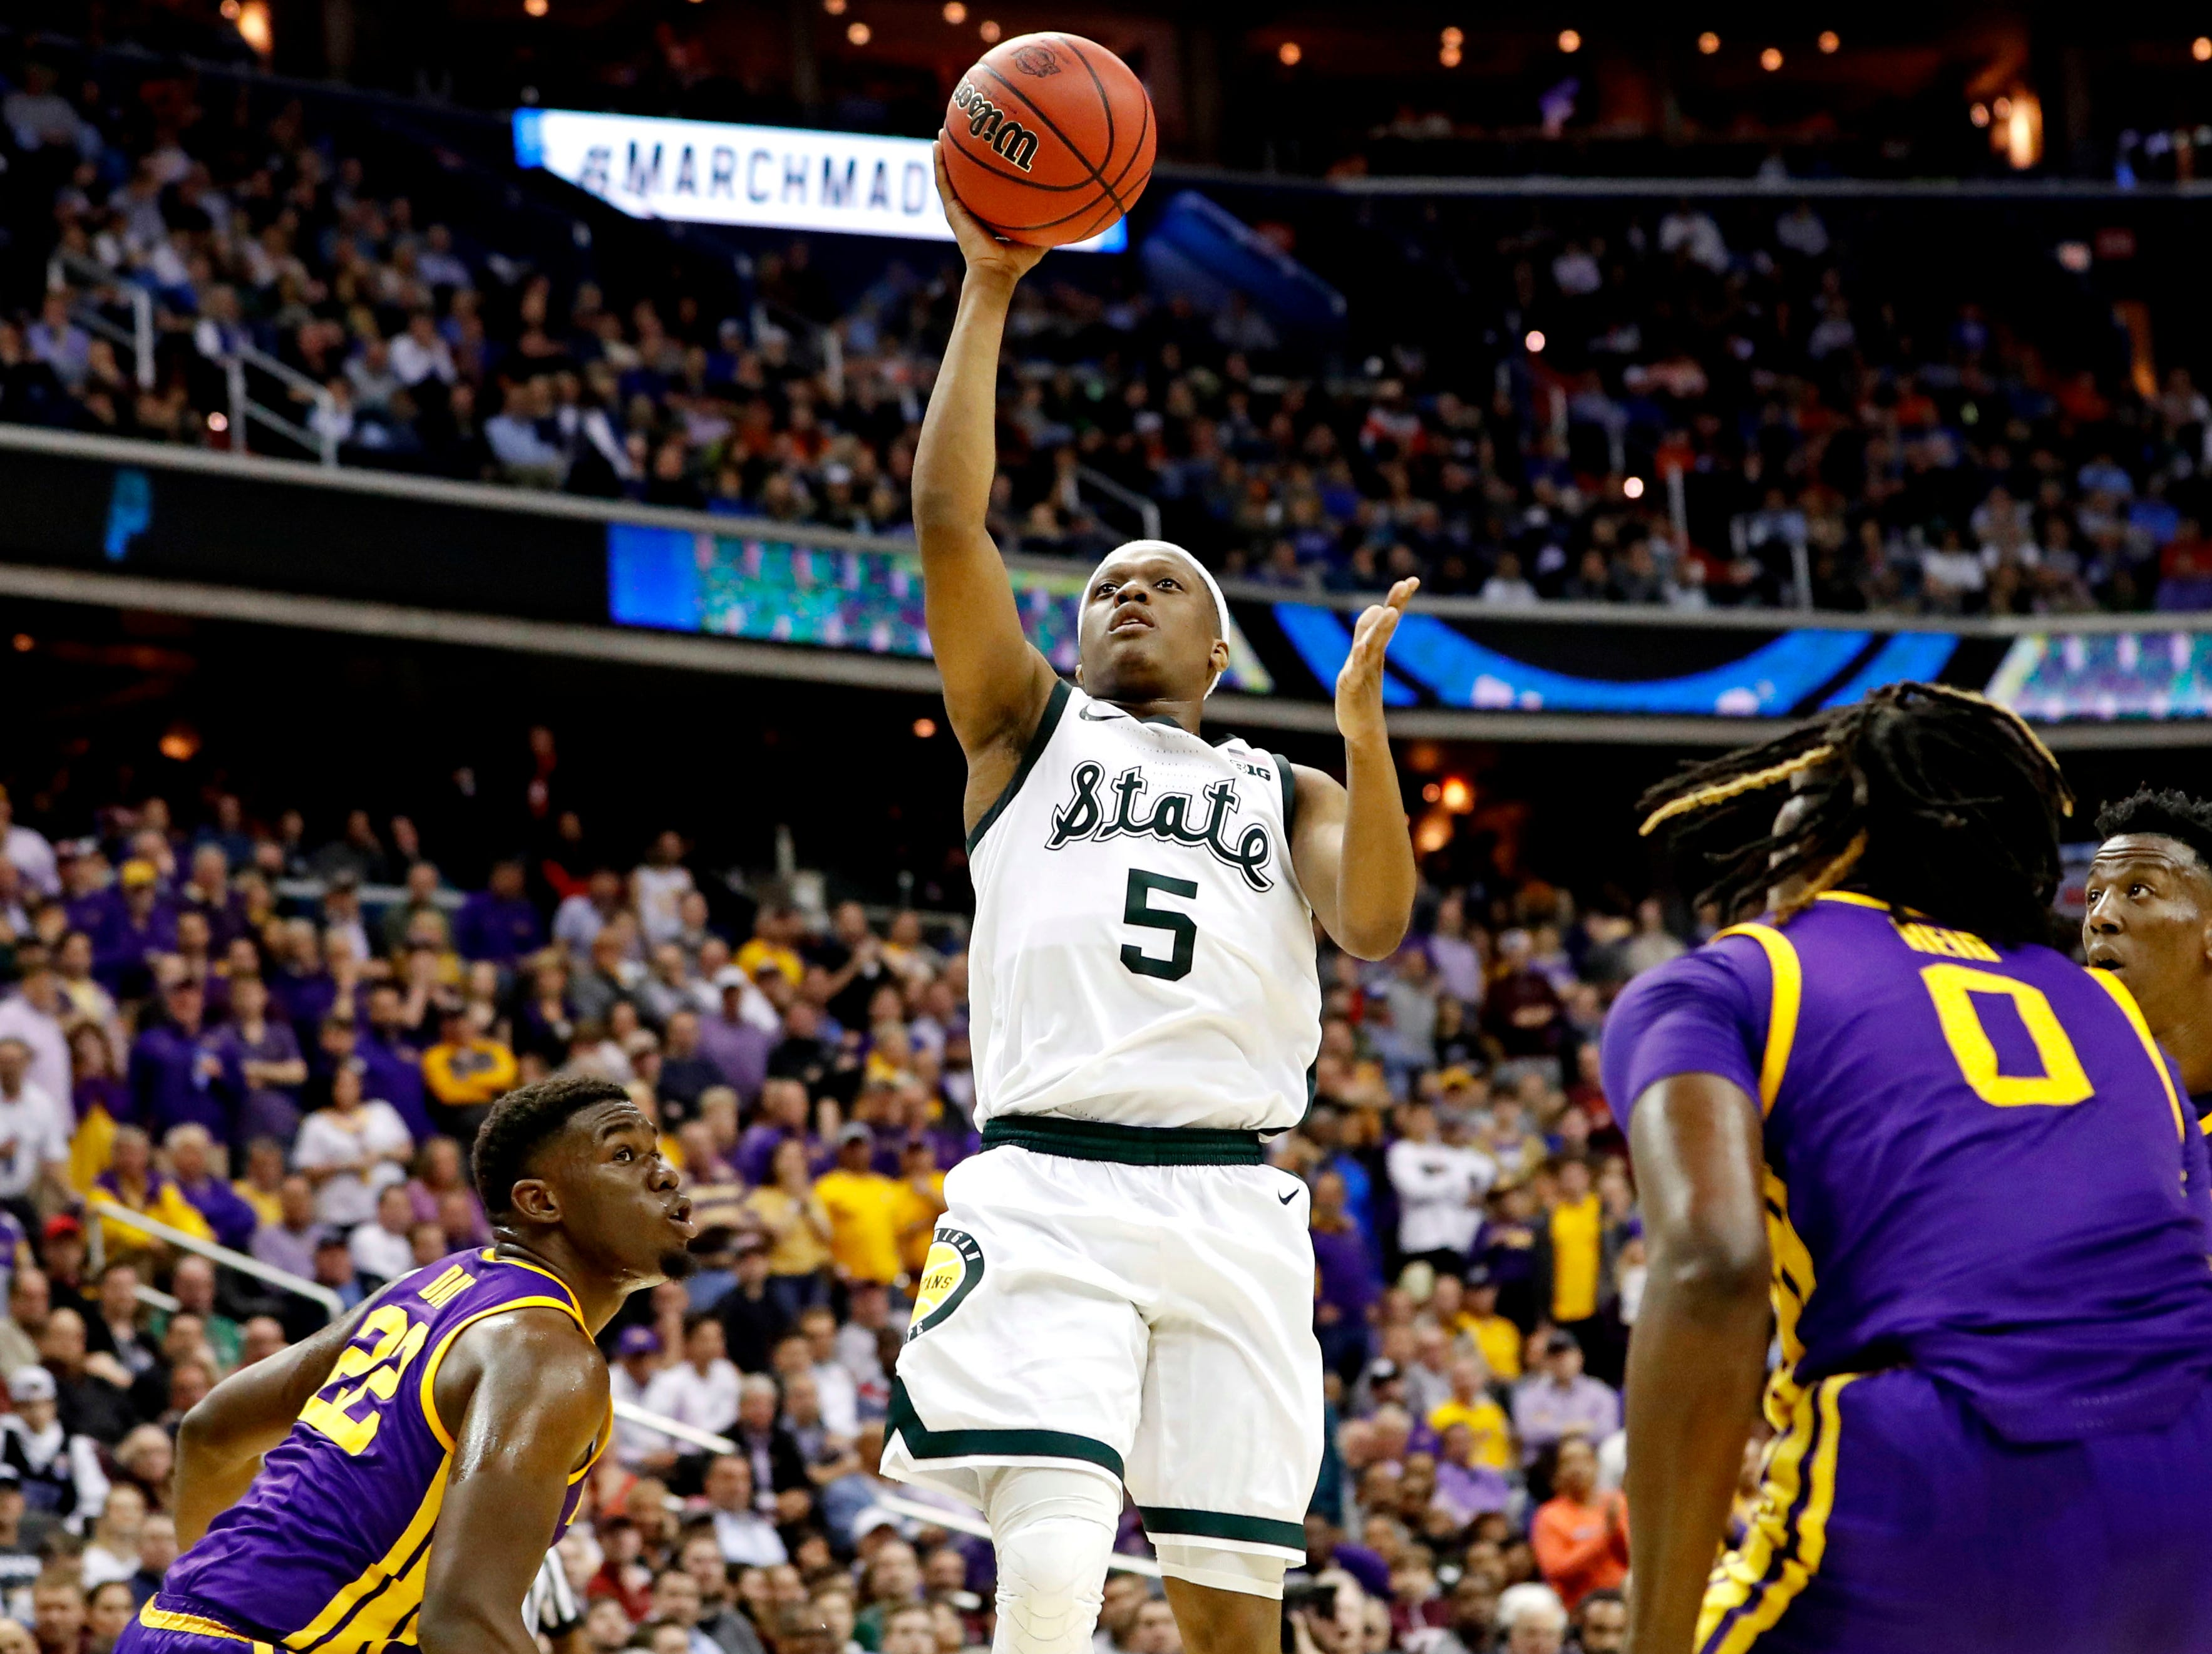 Mar 29, 2019; Washington, DC, USA; Michigan State Spartans guard Cassius Winston (5) shoots the ball against LSU Tigers forward Darius Days (22) during the second half in the semifinals of the east regional of the 2019 NCAA Tournament at Capital One Arena. Mandatory Credit: Geoff Burke-USA TODAY Sports